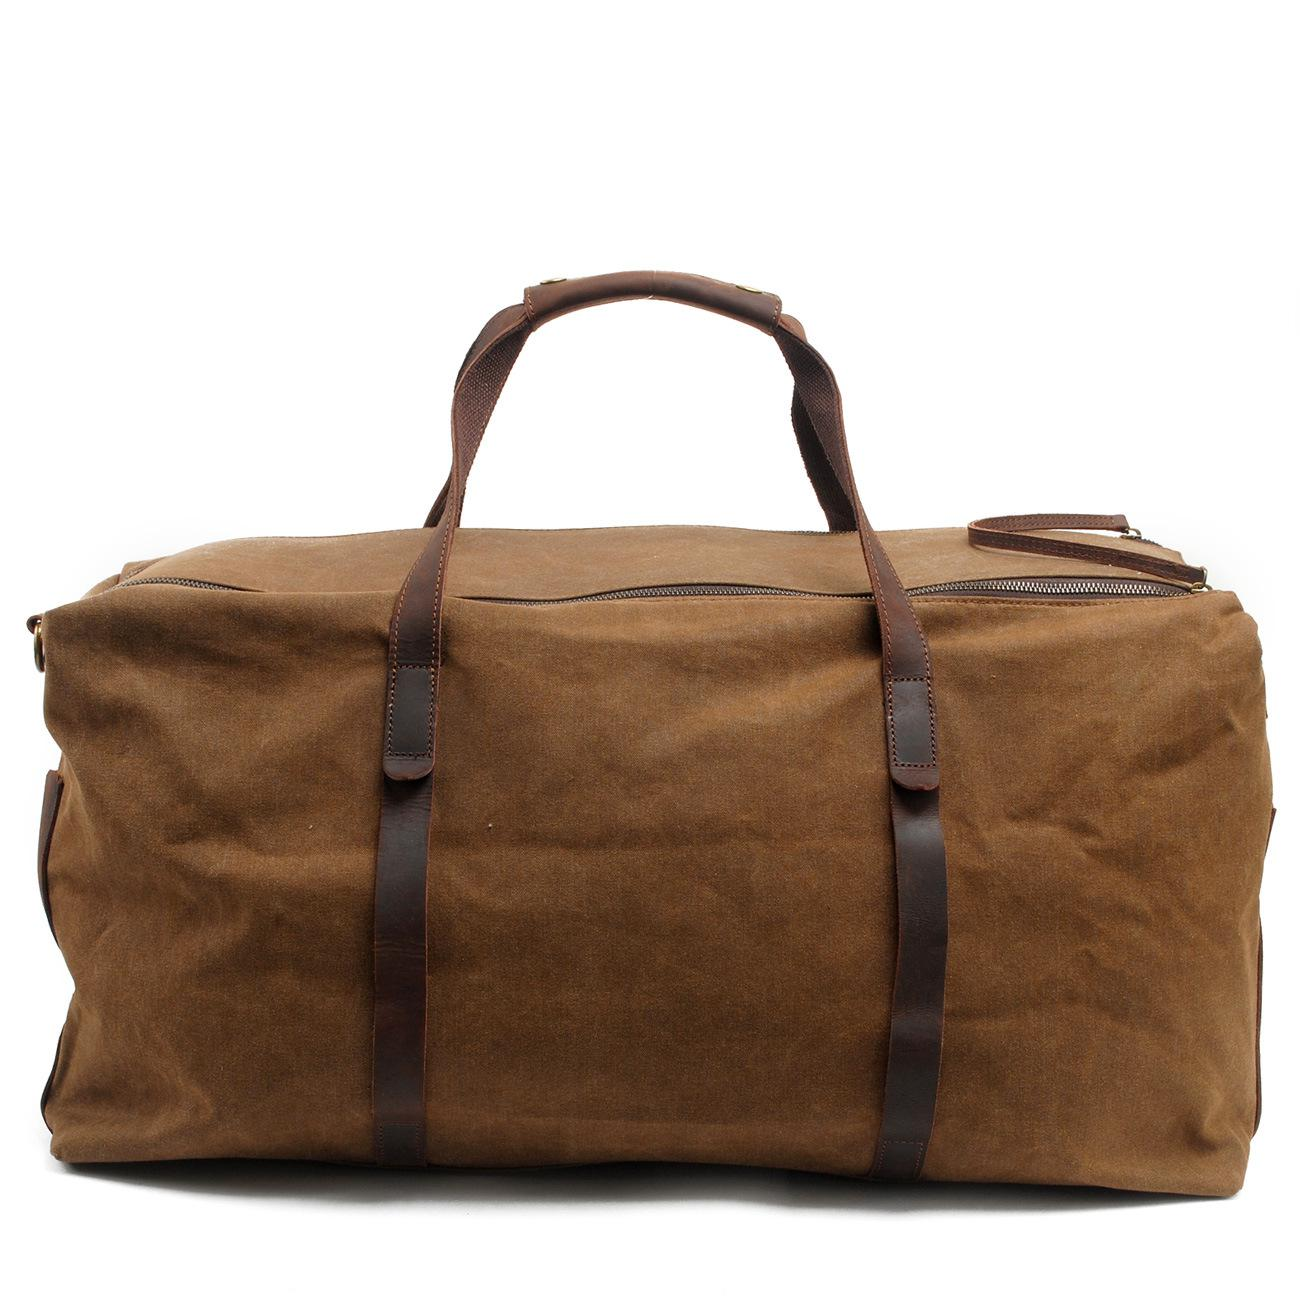 2016 Rushed Men Solid Khaki Travel Bags Vintage Wax Printing Canvas Leather Luggage Duffel Tote Large Weekend Bag Overnight augur new canvas leather carry on luggage bags men travel bags men travel tote large capacity weekend bag overnight duffel bags